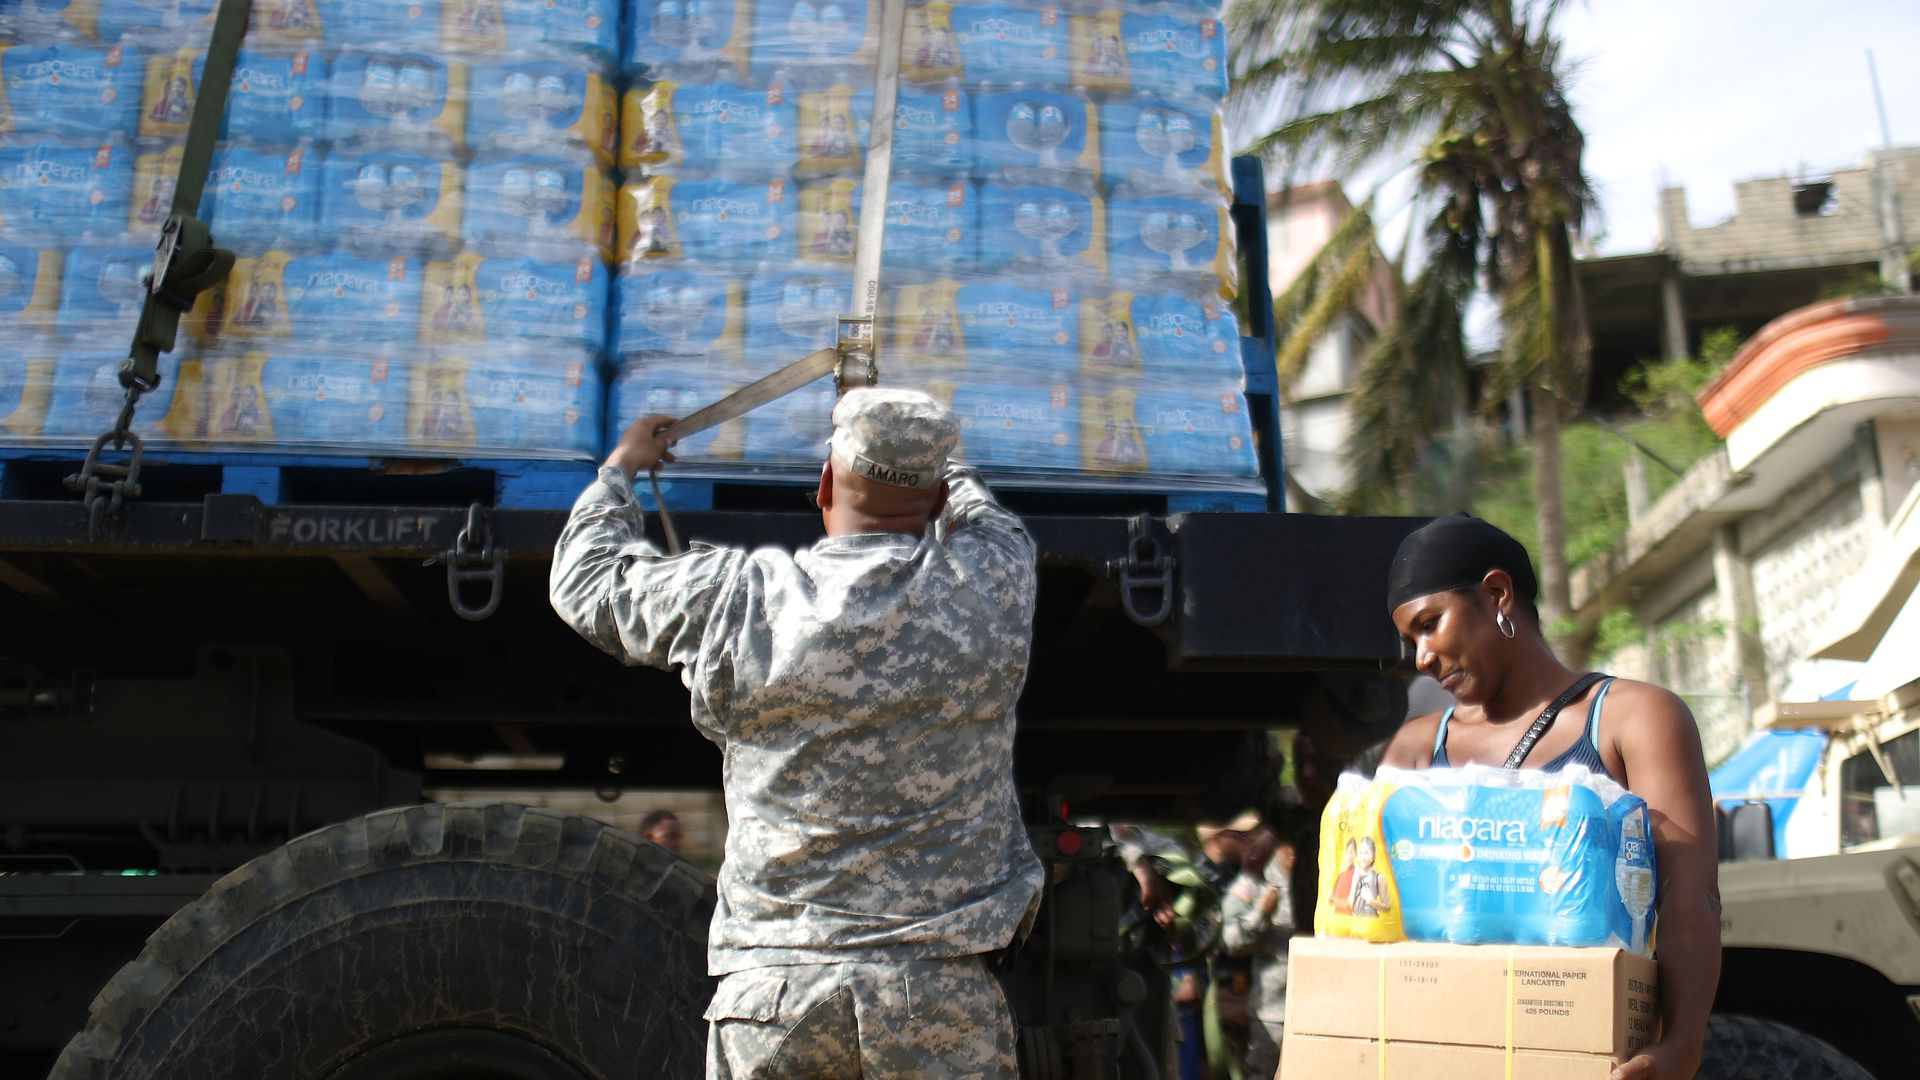 A U.S. Army soldier starts to unload a shipment of water, provided by FEMA on October 17, 2017 in San Isidro, Puerto Rico.